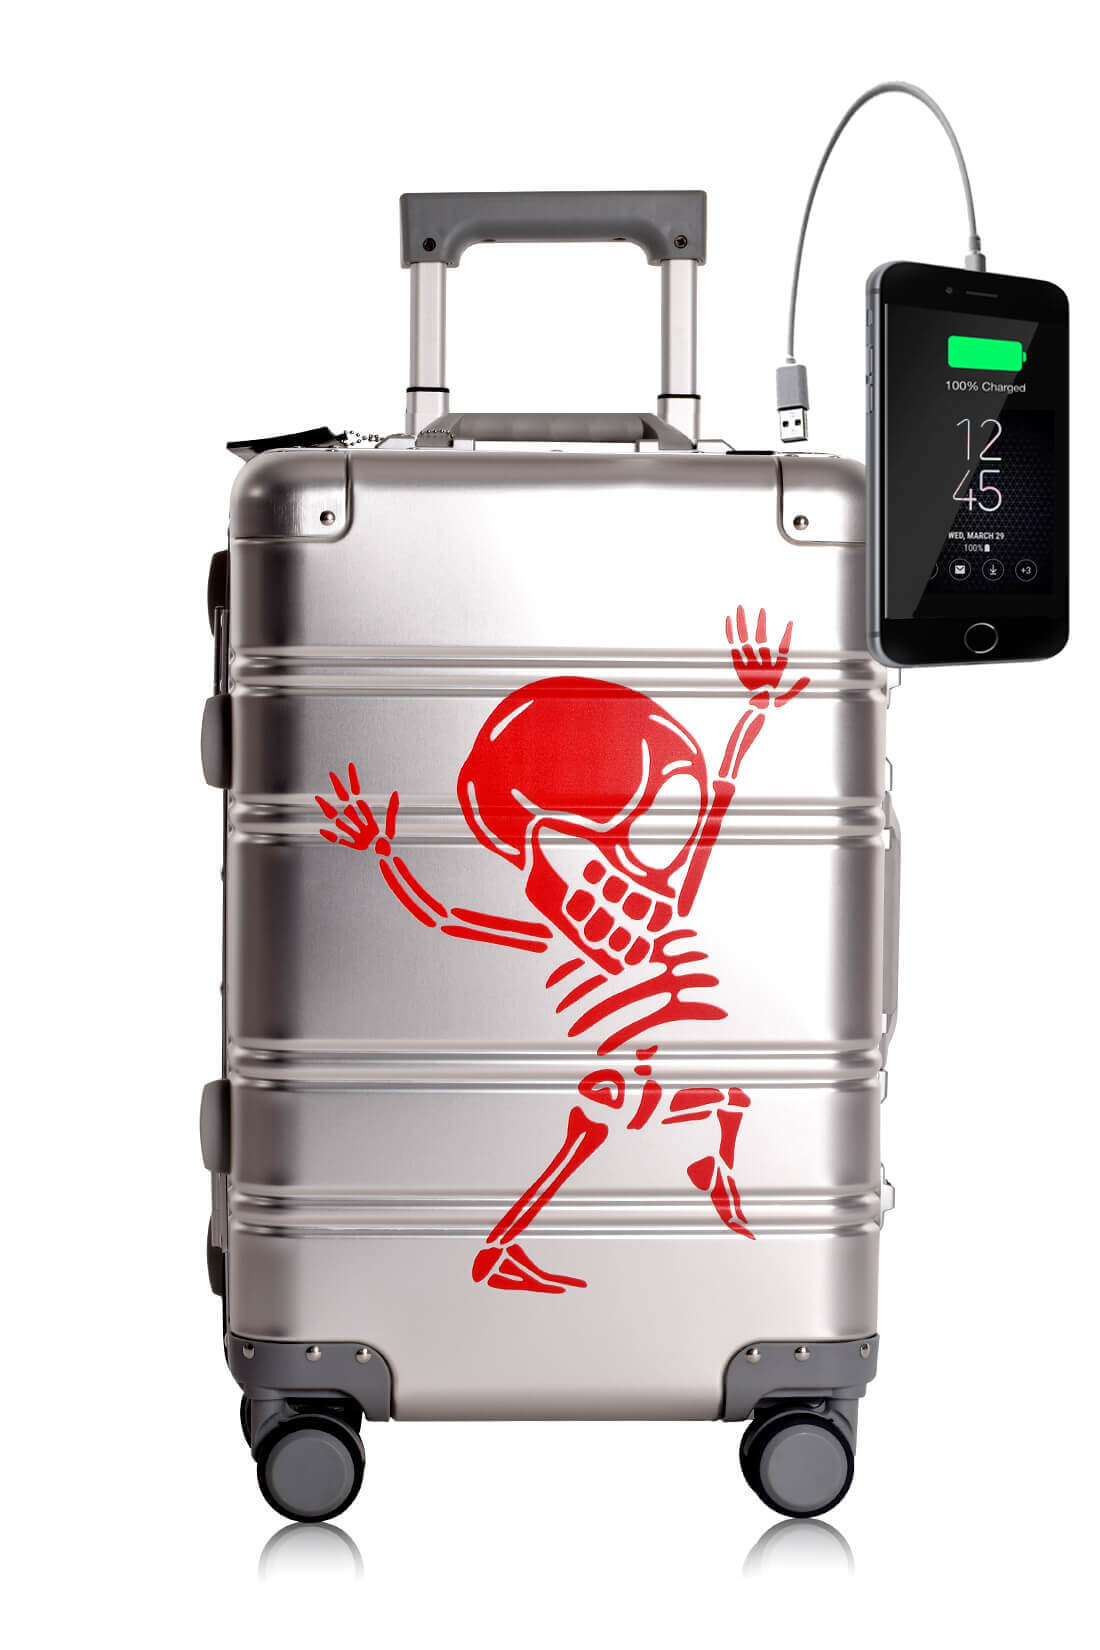 Aluminium Valise Online Cabine Trolley Enfant TOKYOTO LUGGAGE Modelle SILVER SKULL